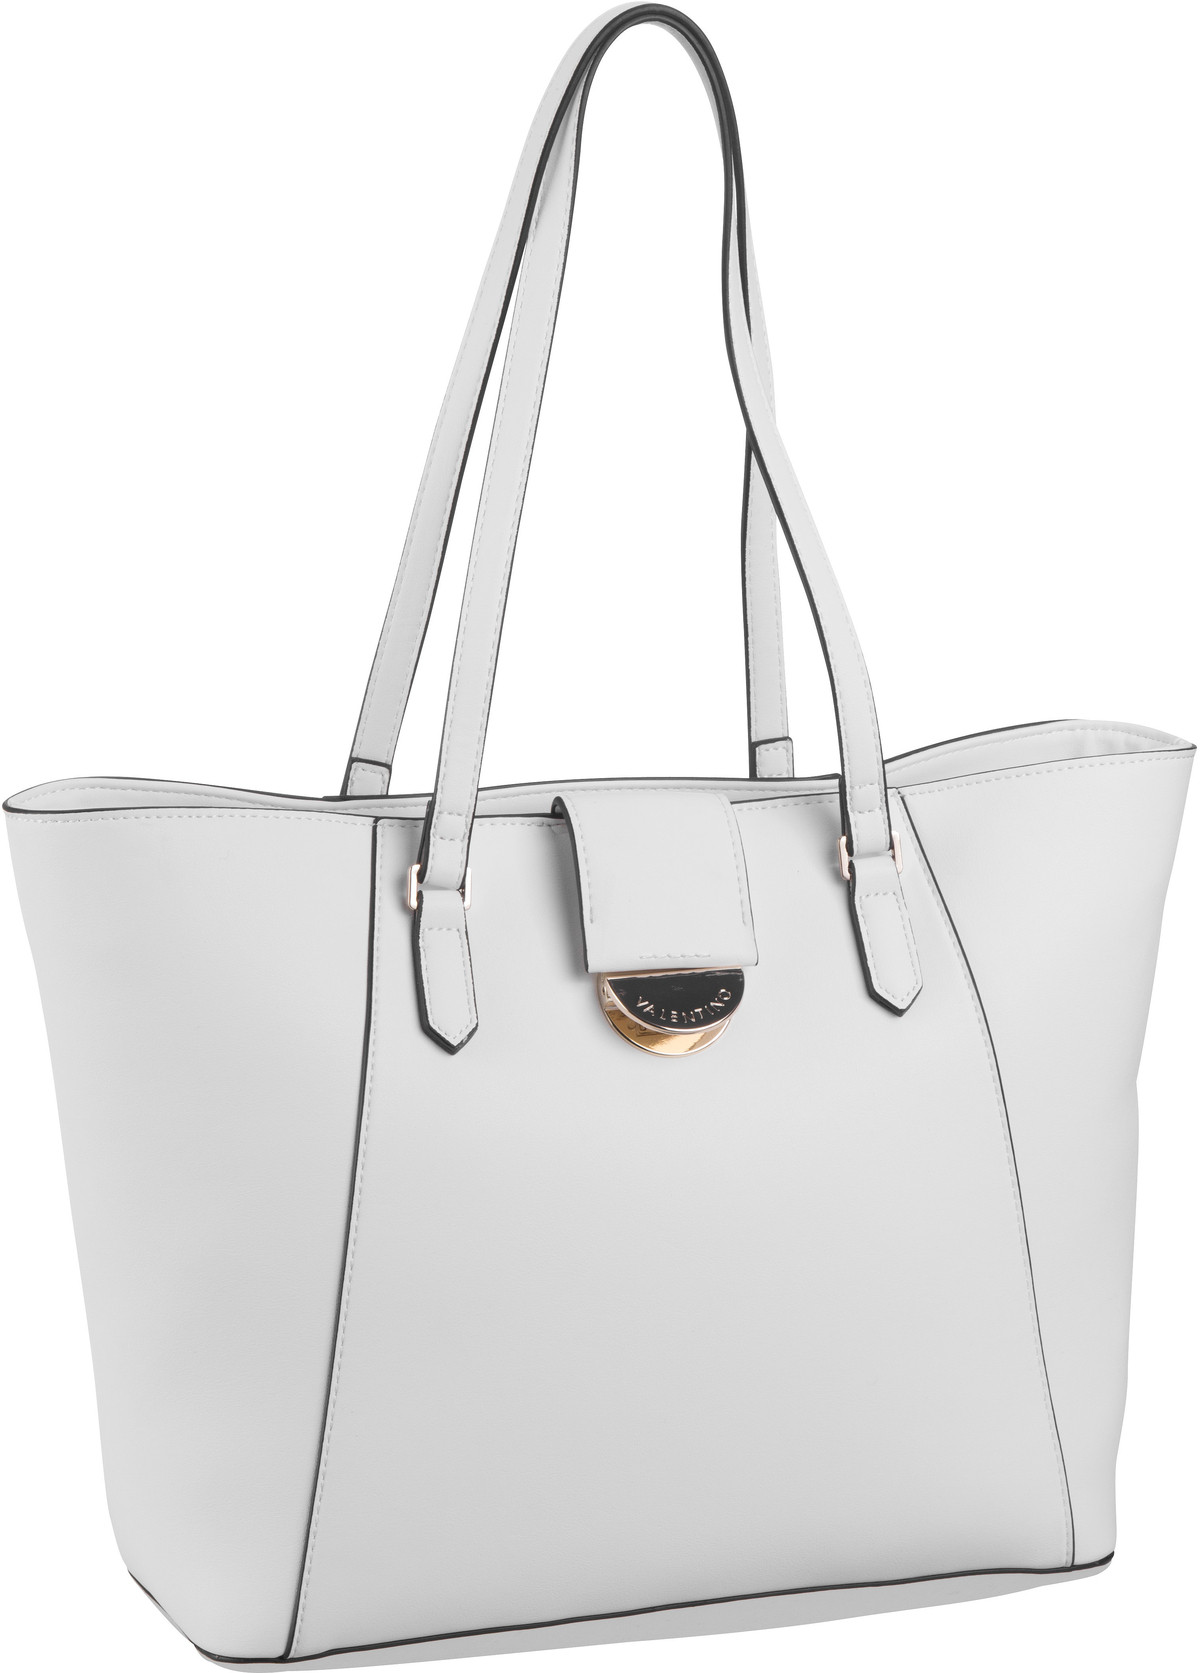 Bags Handtasche Falcor Shopping P01 Bianco